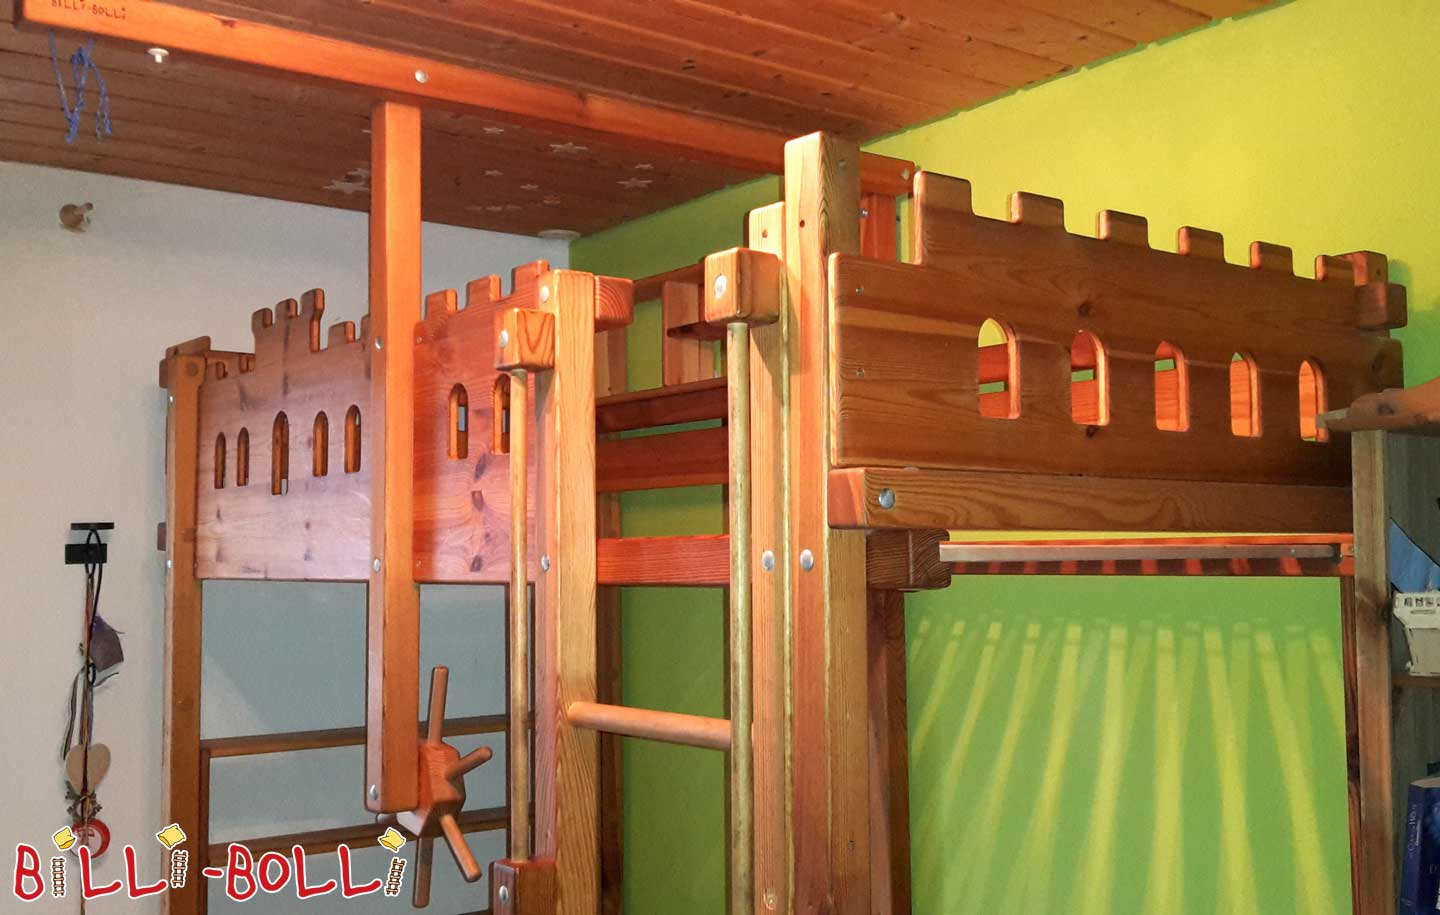 Ritterburg-Billi-Bolli-Hochbett (second hand loft bed)